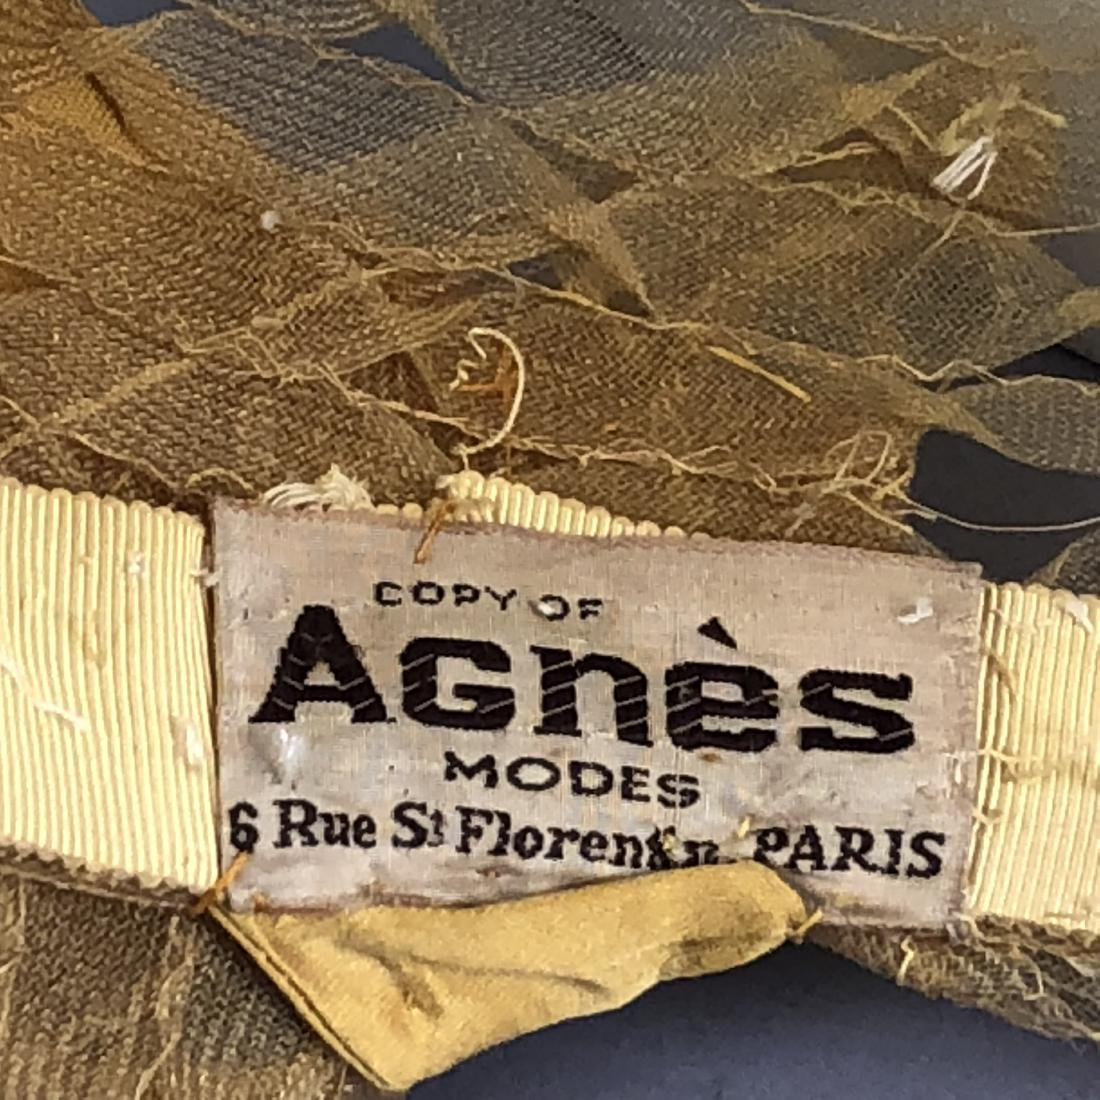 PARIS LABEL WIDE-BRIM HORSEHAIR CLOCHE, c. 1930 - 3